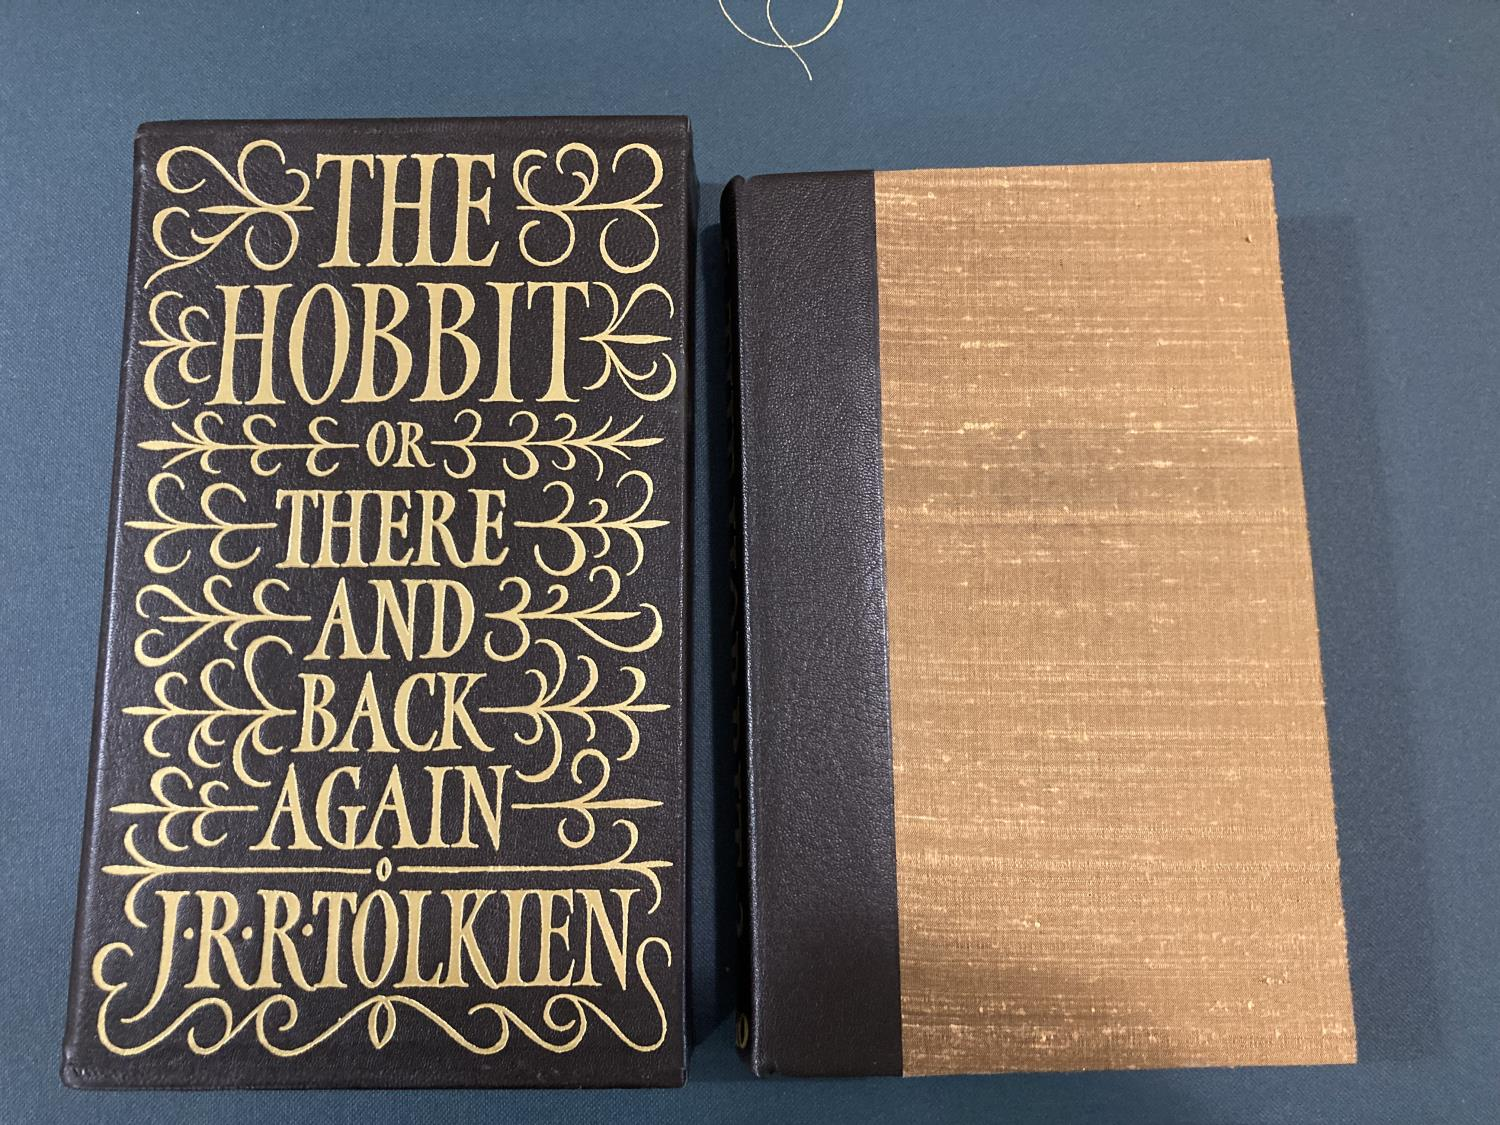 Folio Society. A group of 74 volumes, mostly literature and poetry, various bindings, most with - Image 12 of 20